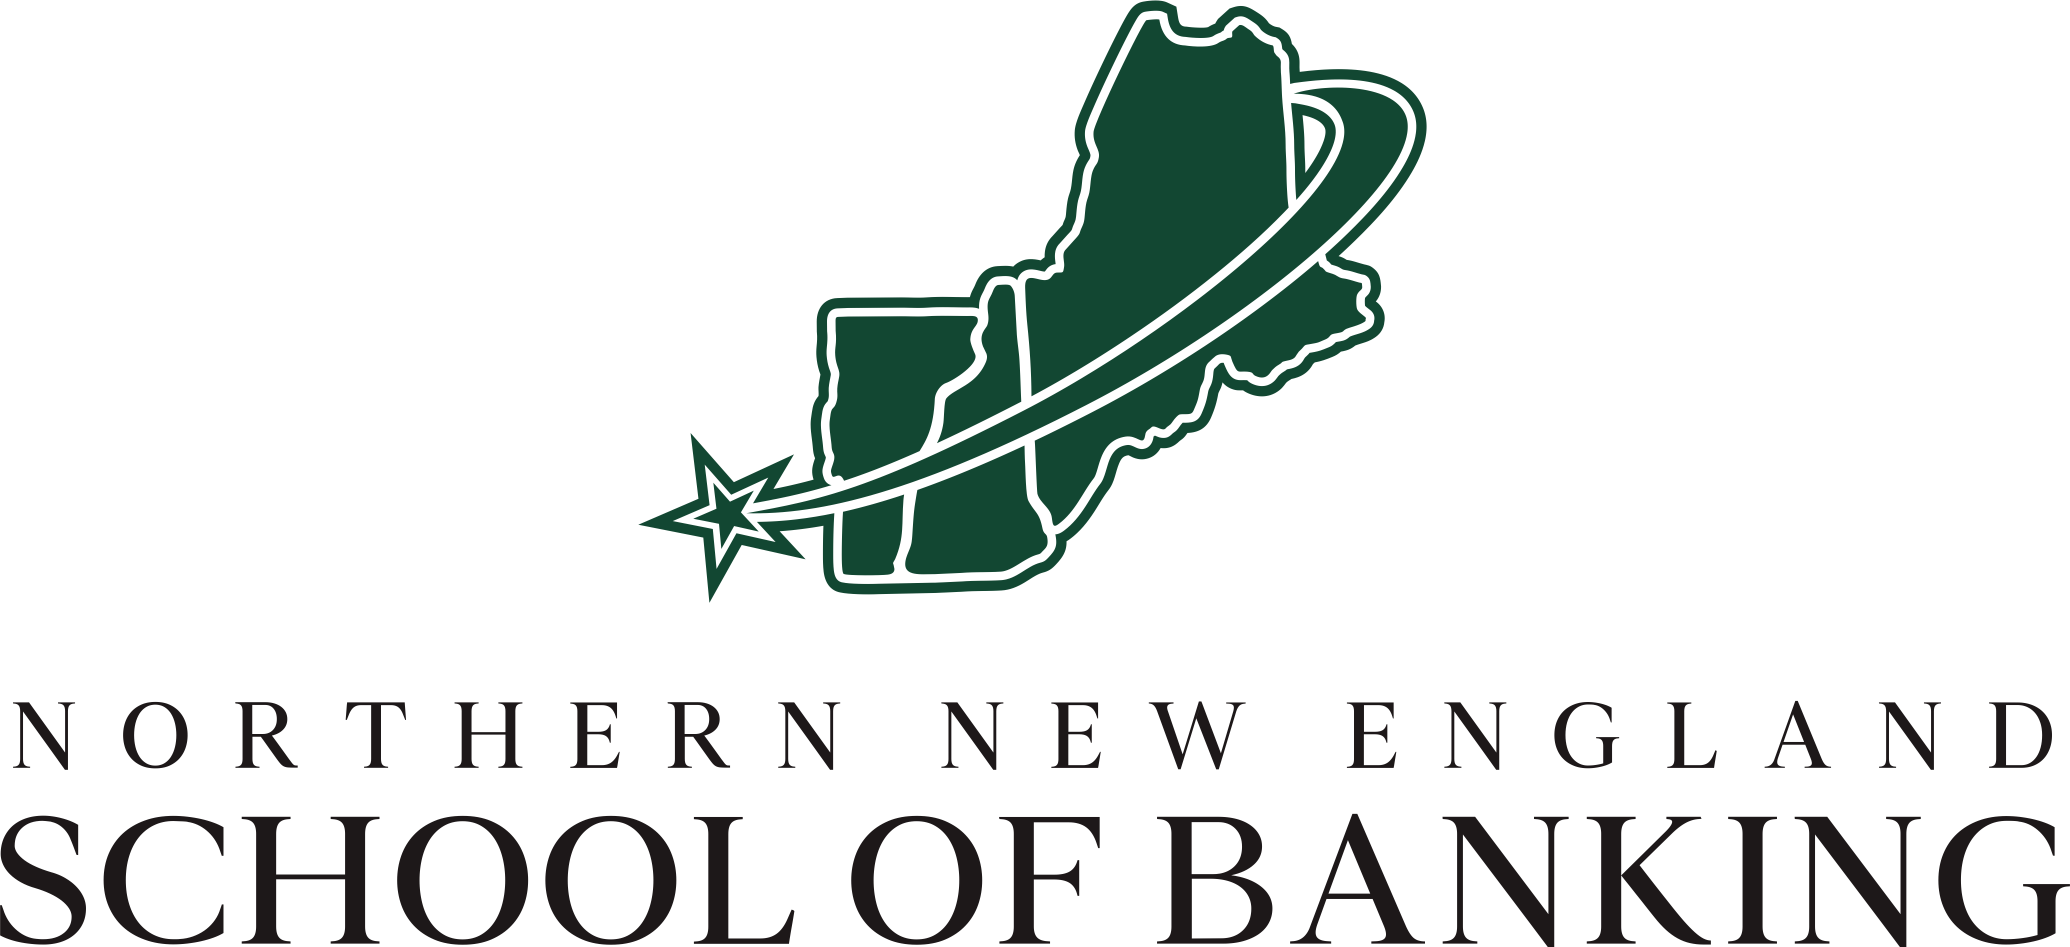 Northern New England School of Banking